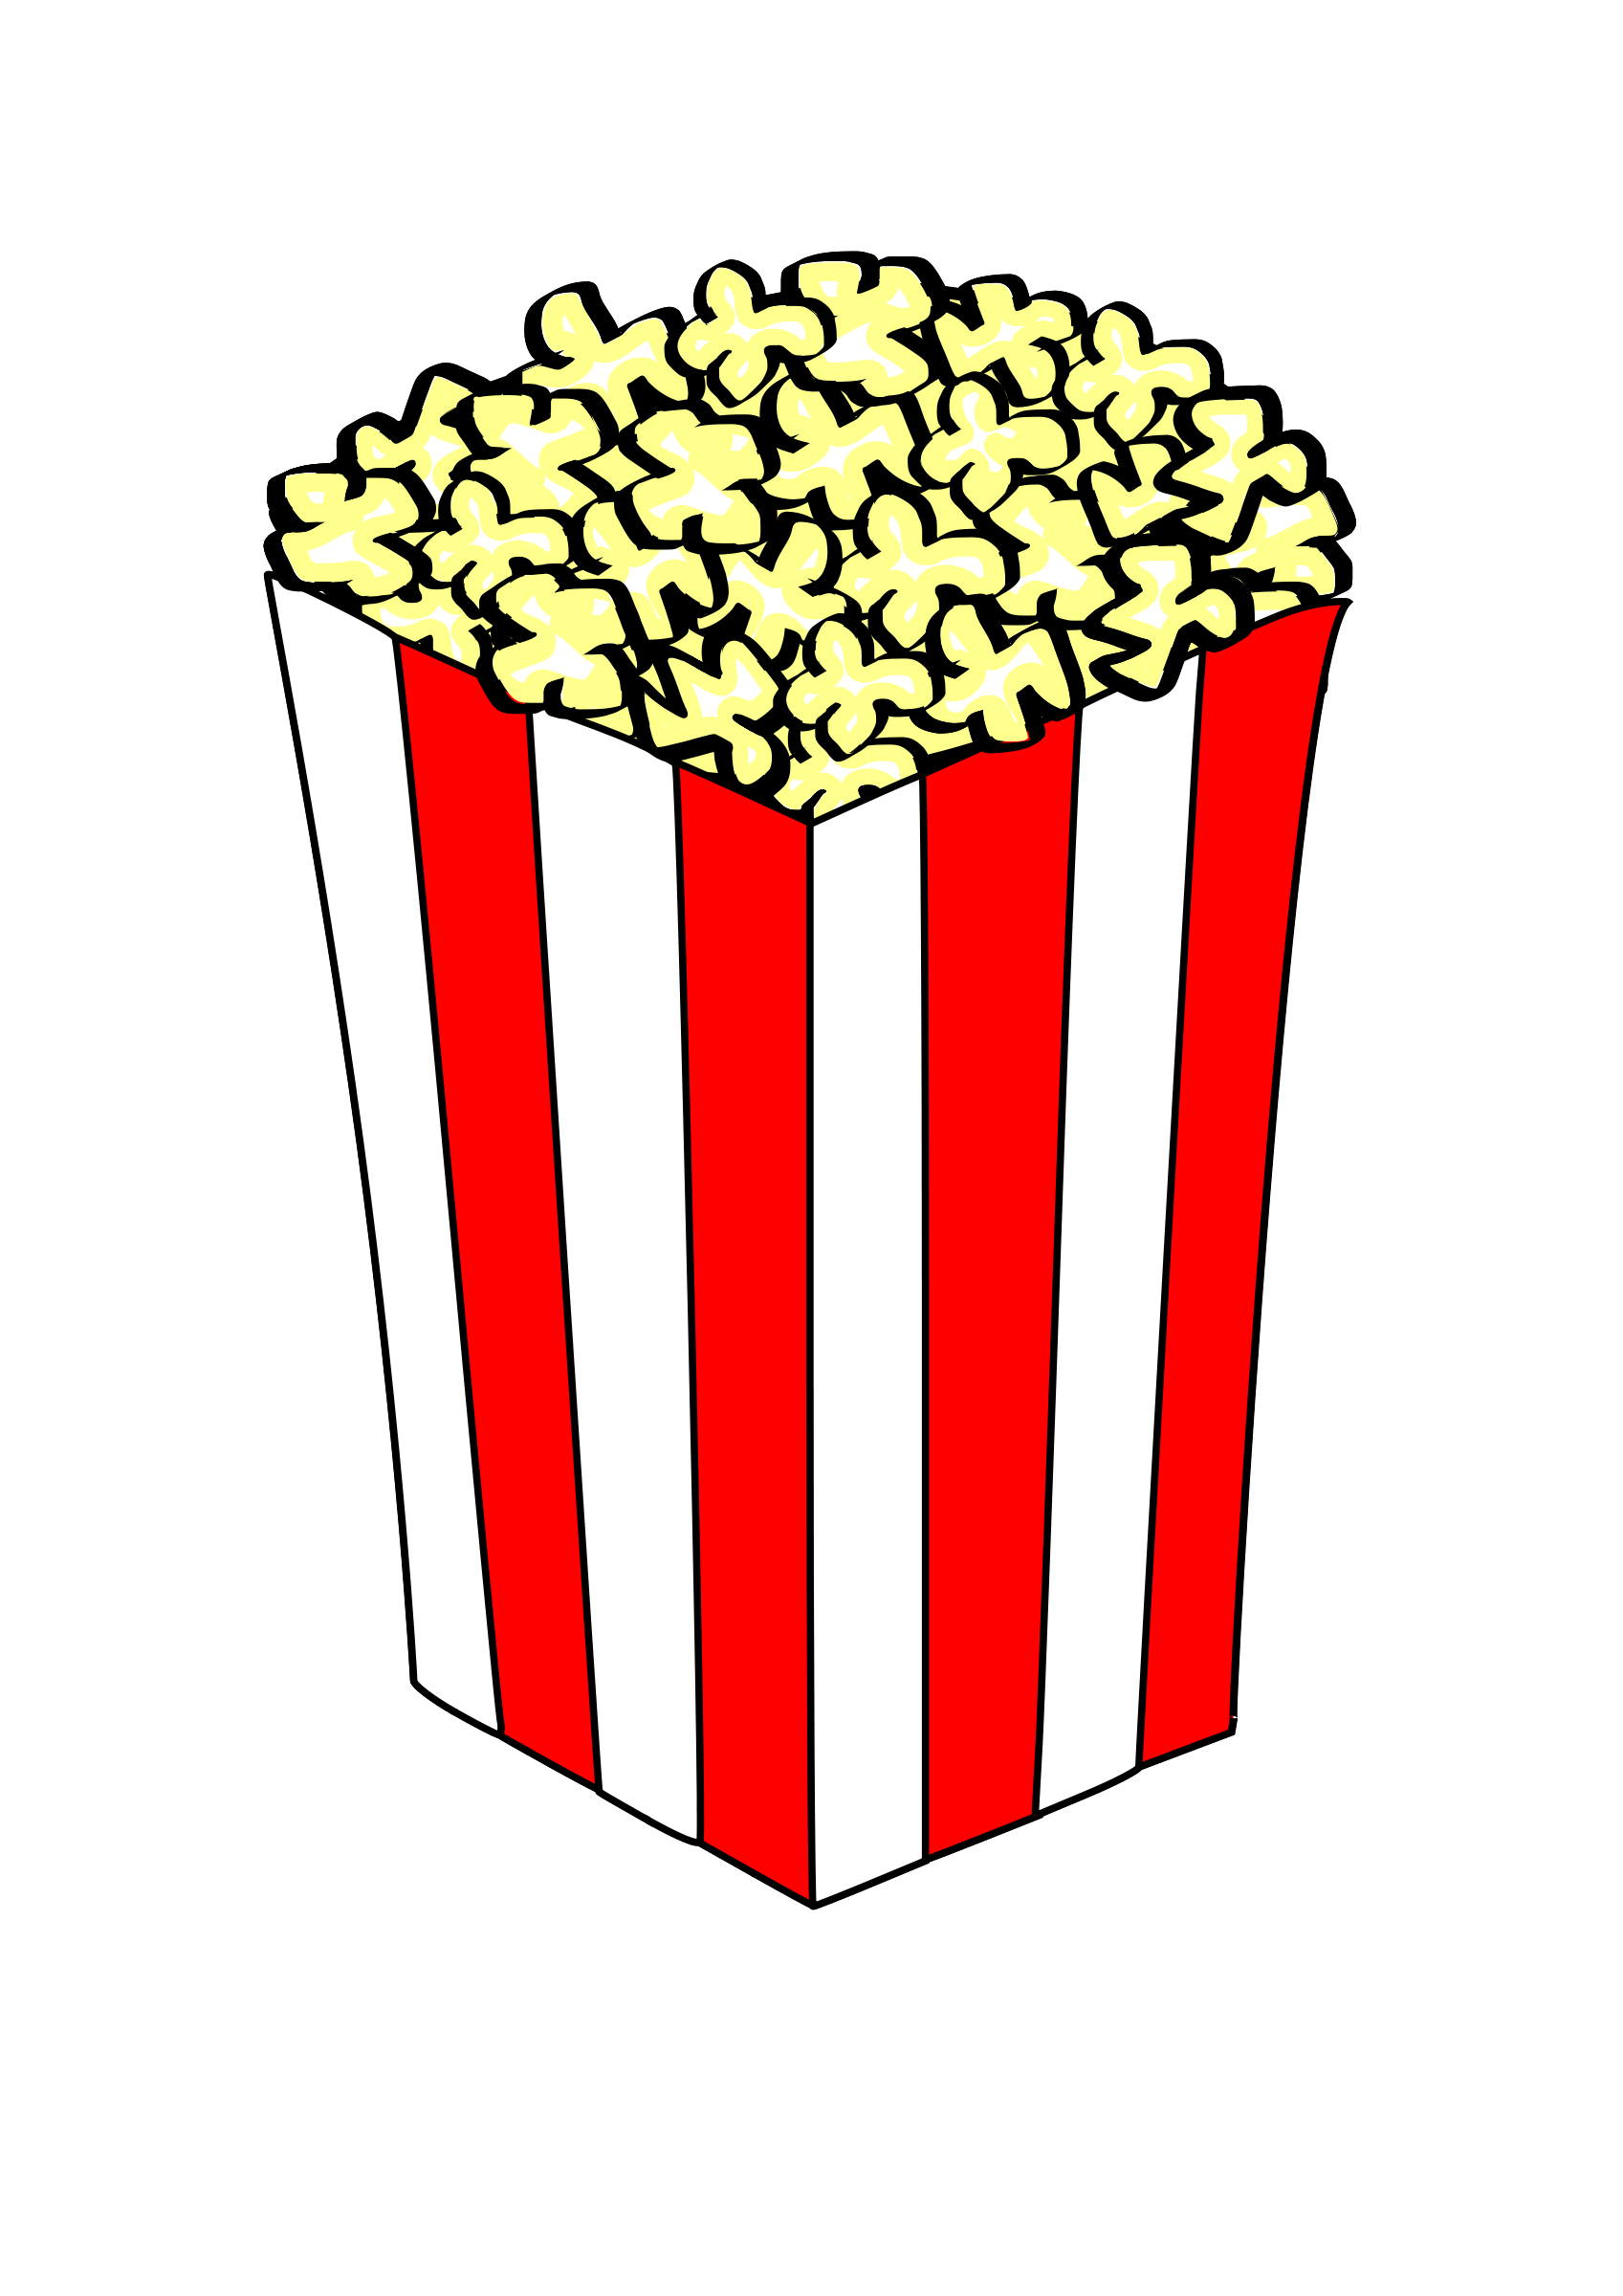 Movie theater popcorn clipart clipart images gallery for.